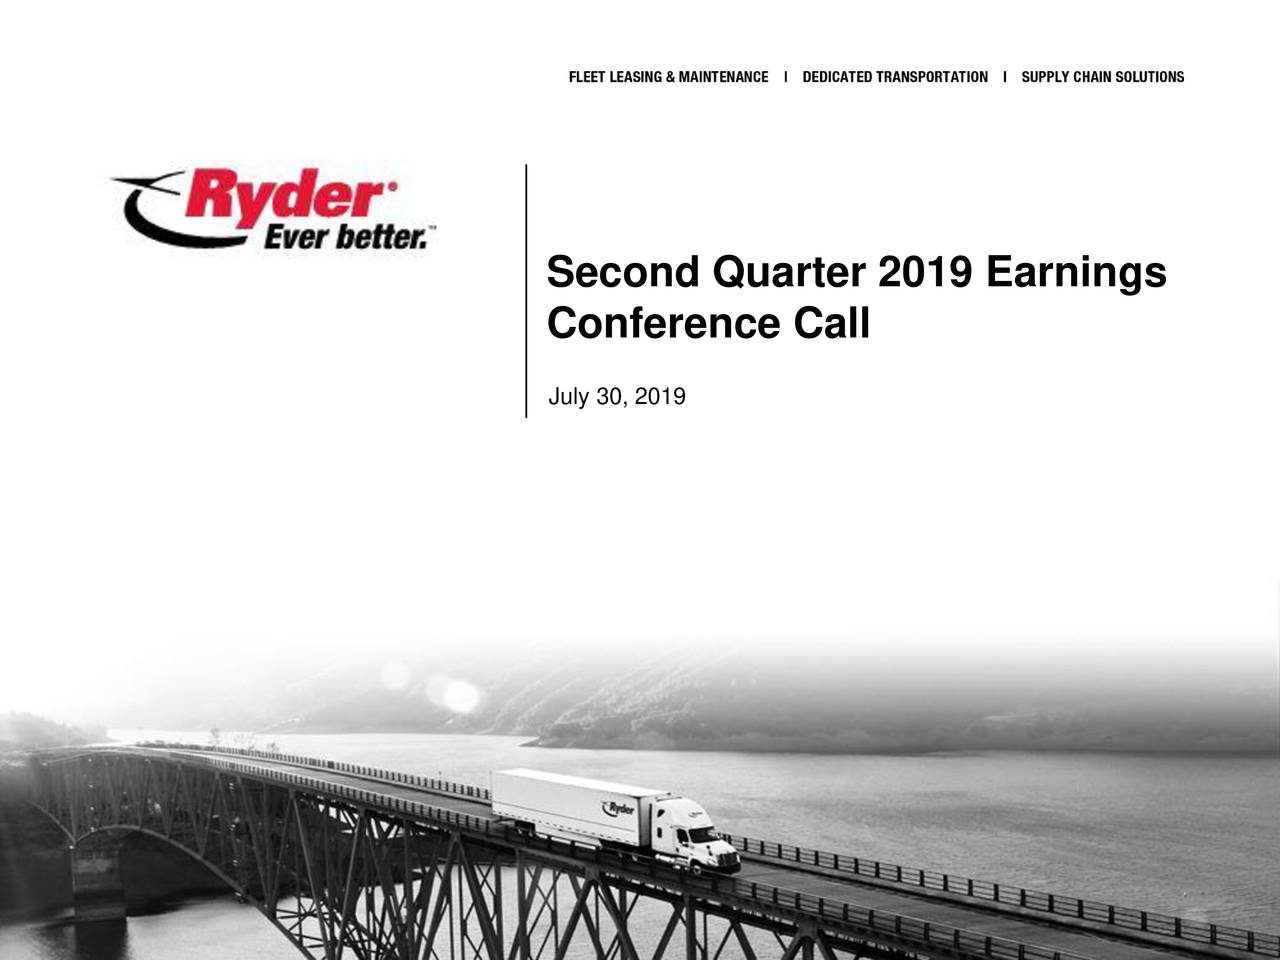 Second Quarter 2019 Earnings